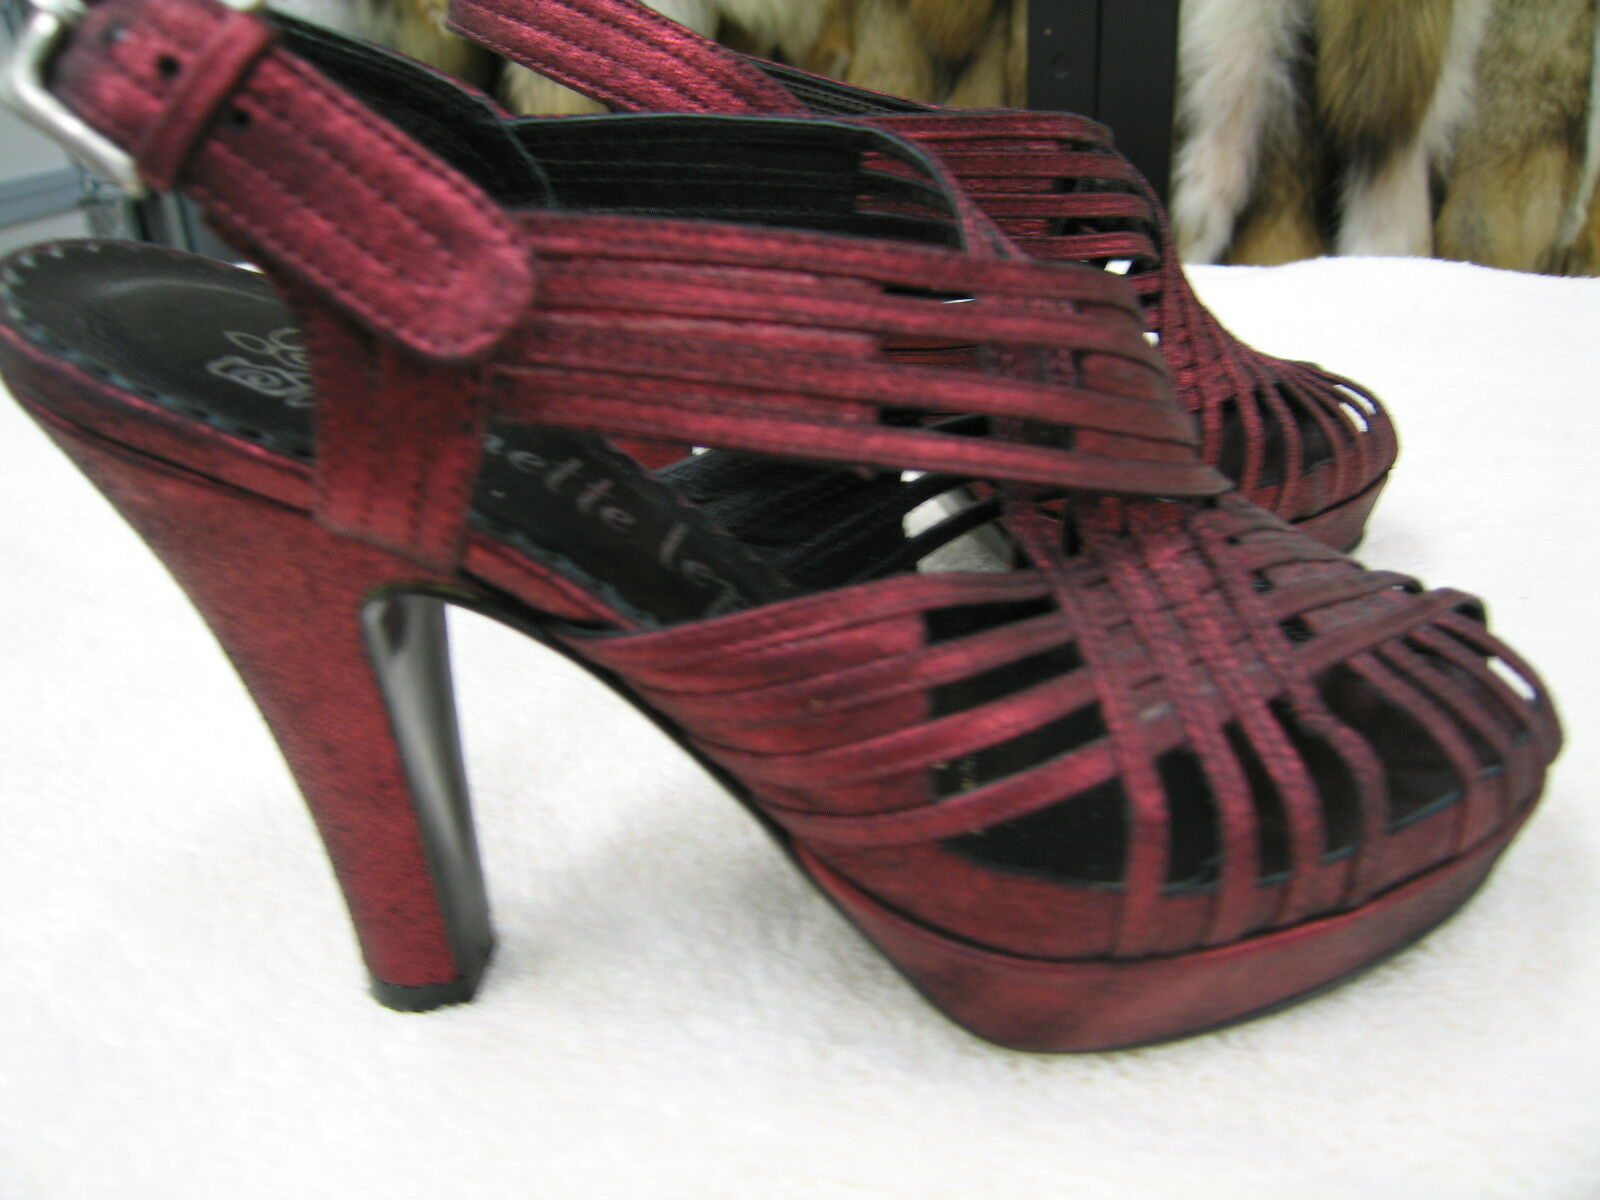 Nanette Lepore Strappy High Heels in Blood Red with a metalic wash Sz 6